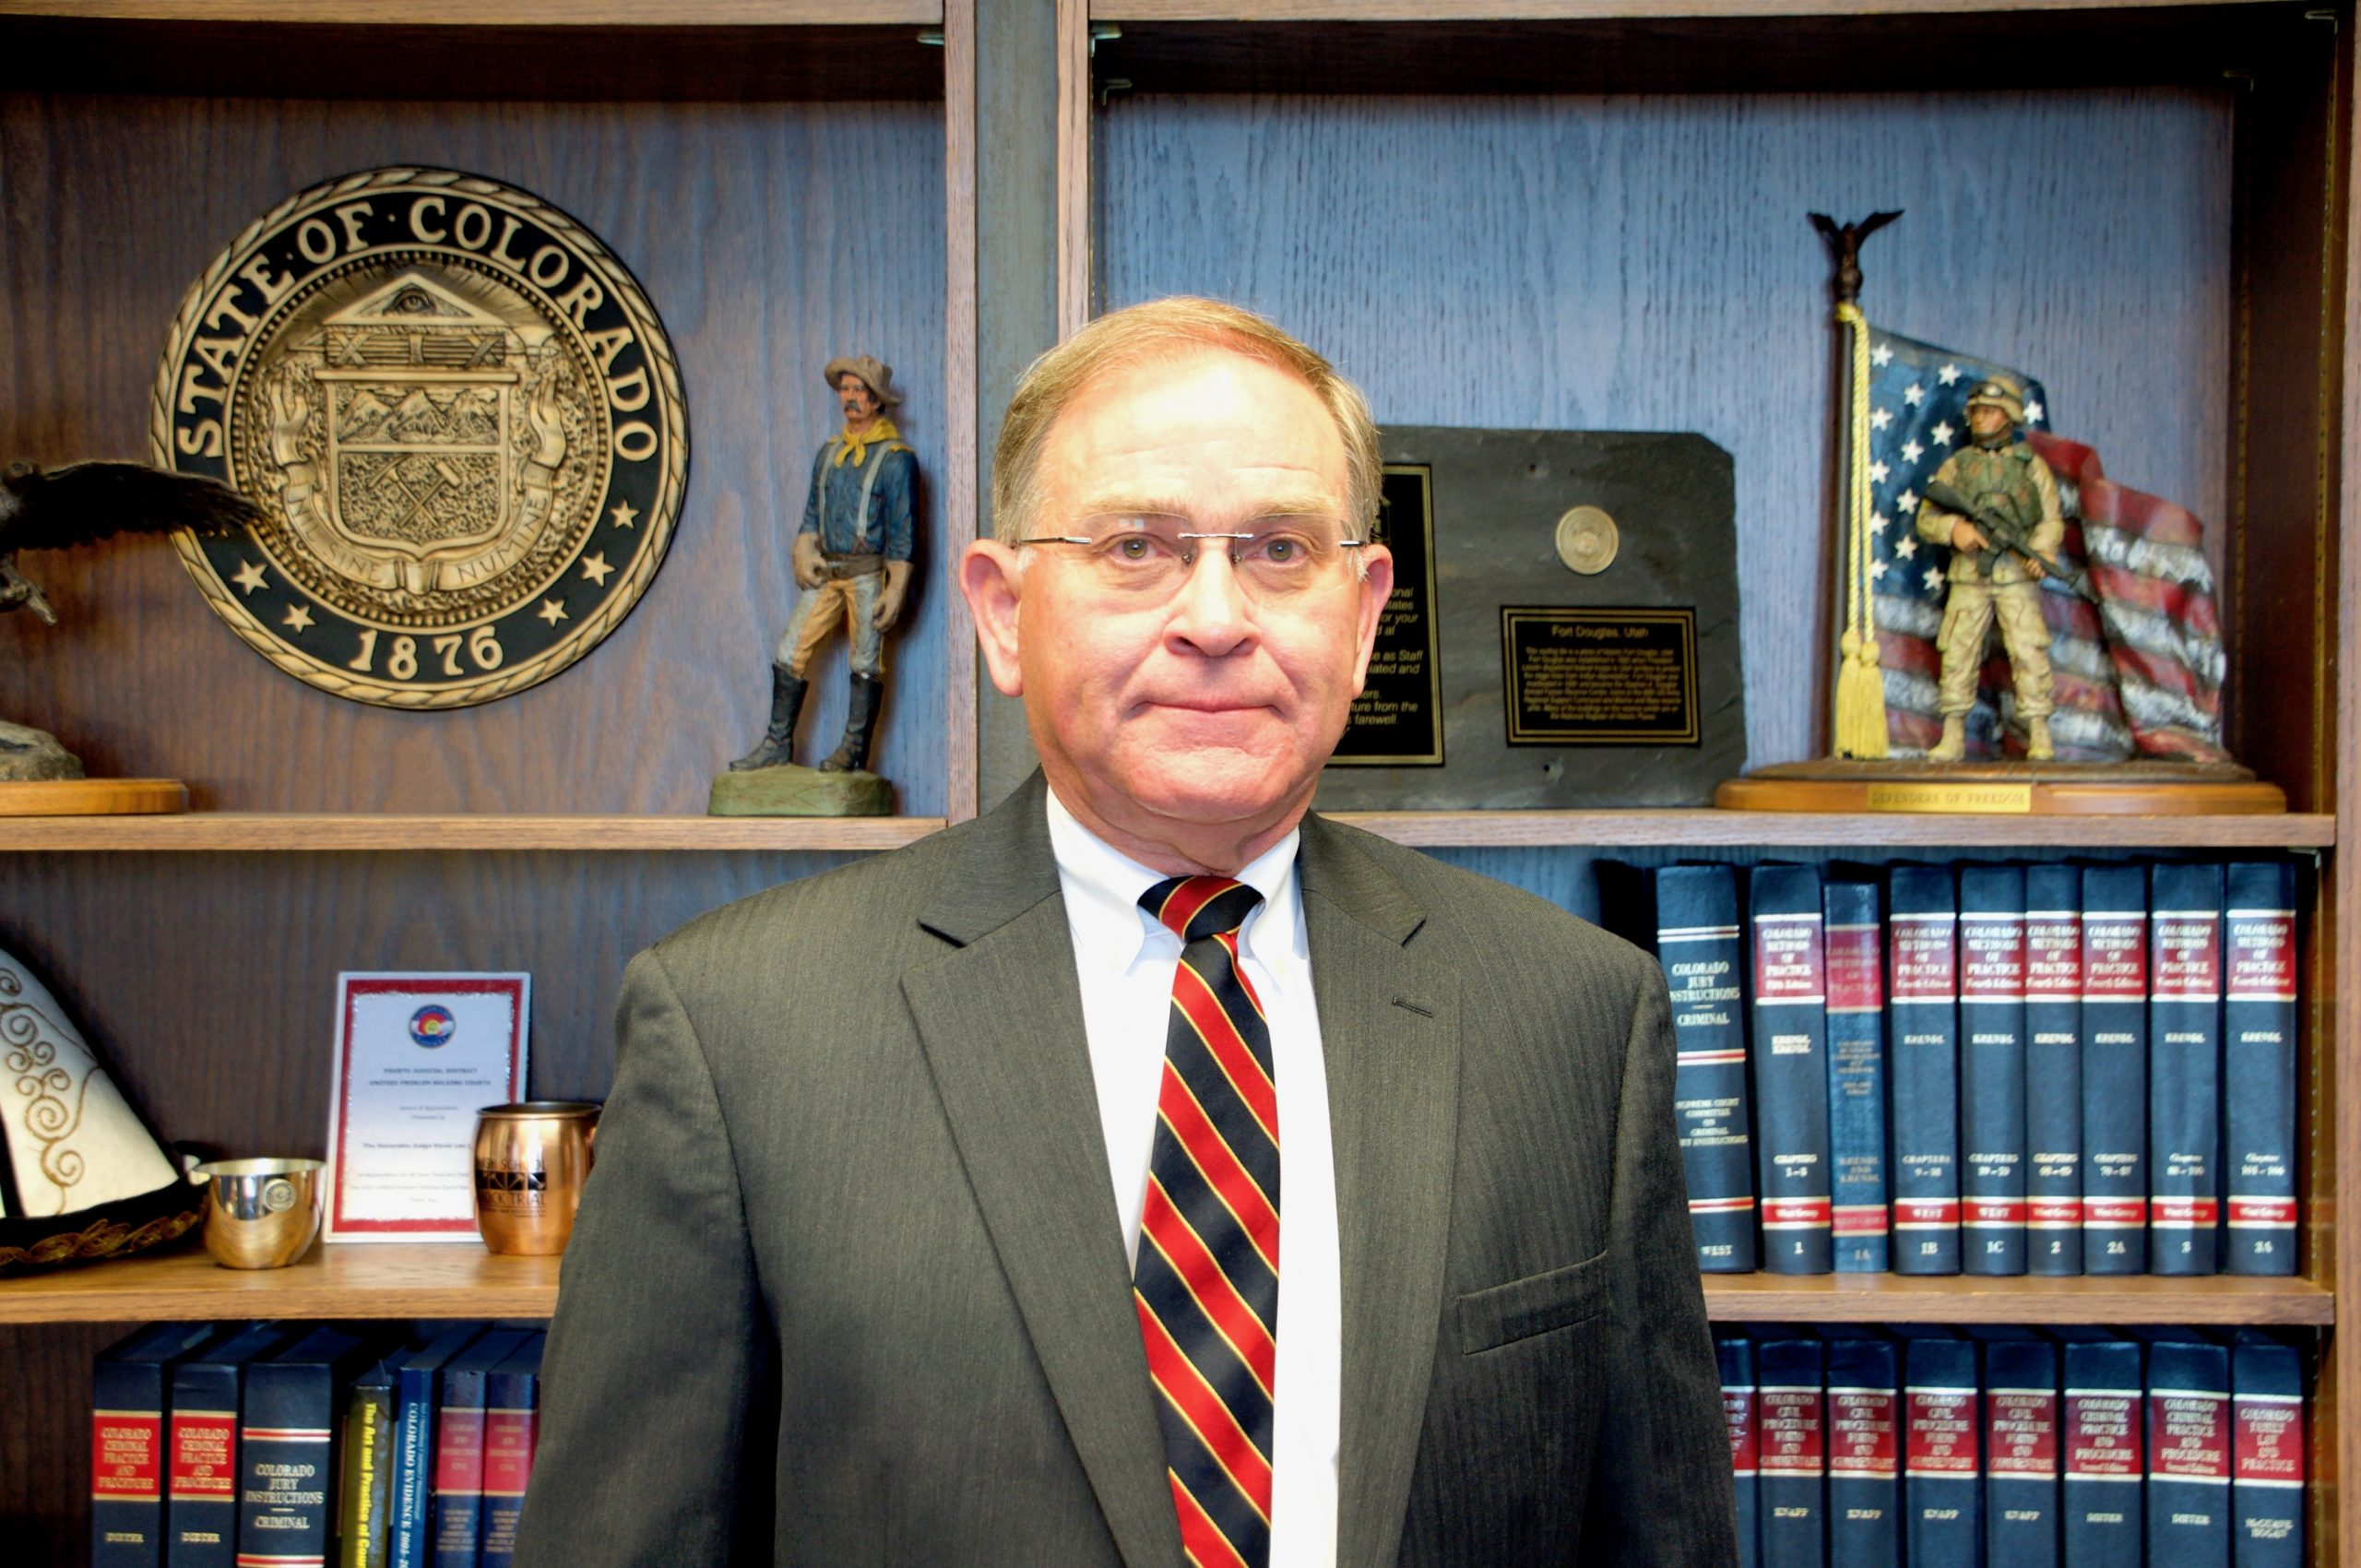 Judge David Shakes oversees the 4th Judicial District Veterans Trauma Court. He is a veteran himself, having retired from the Army Reserves in 2008 after 33 years of service.